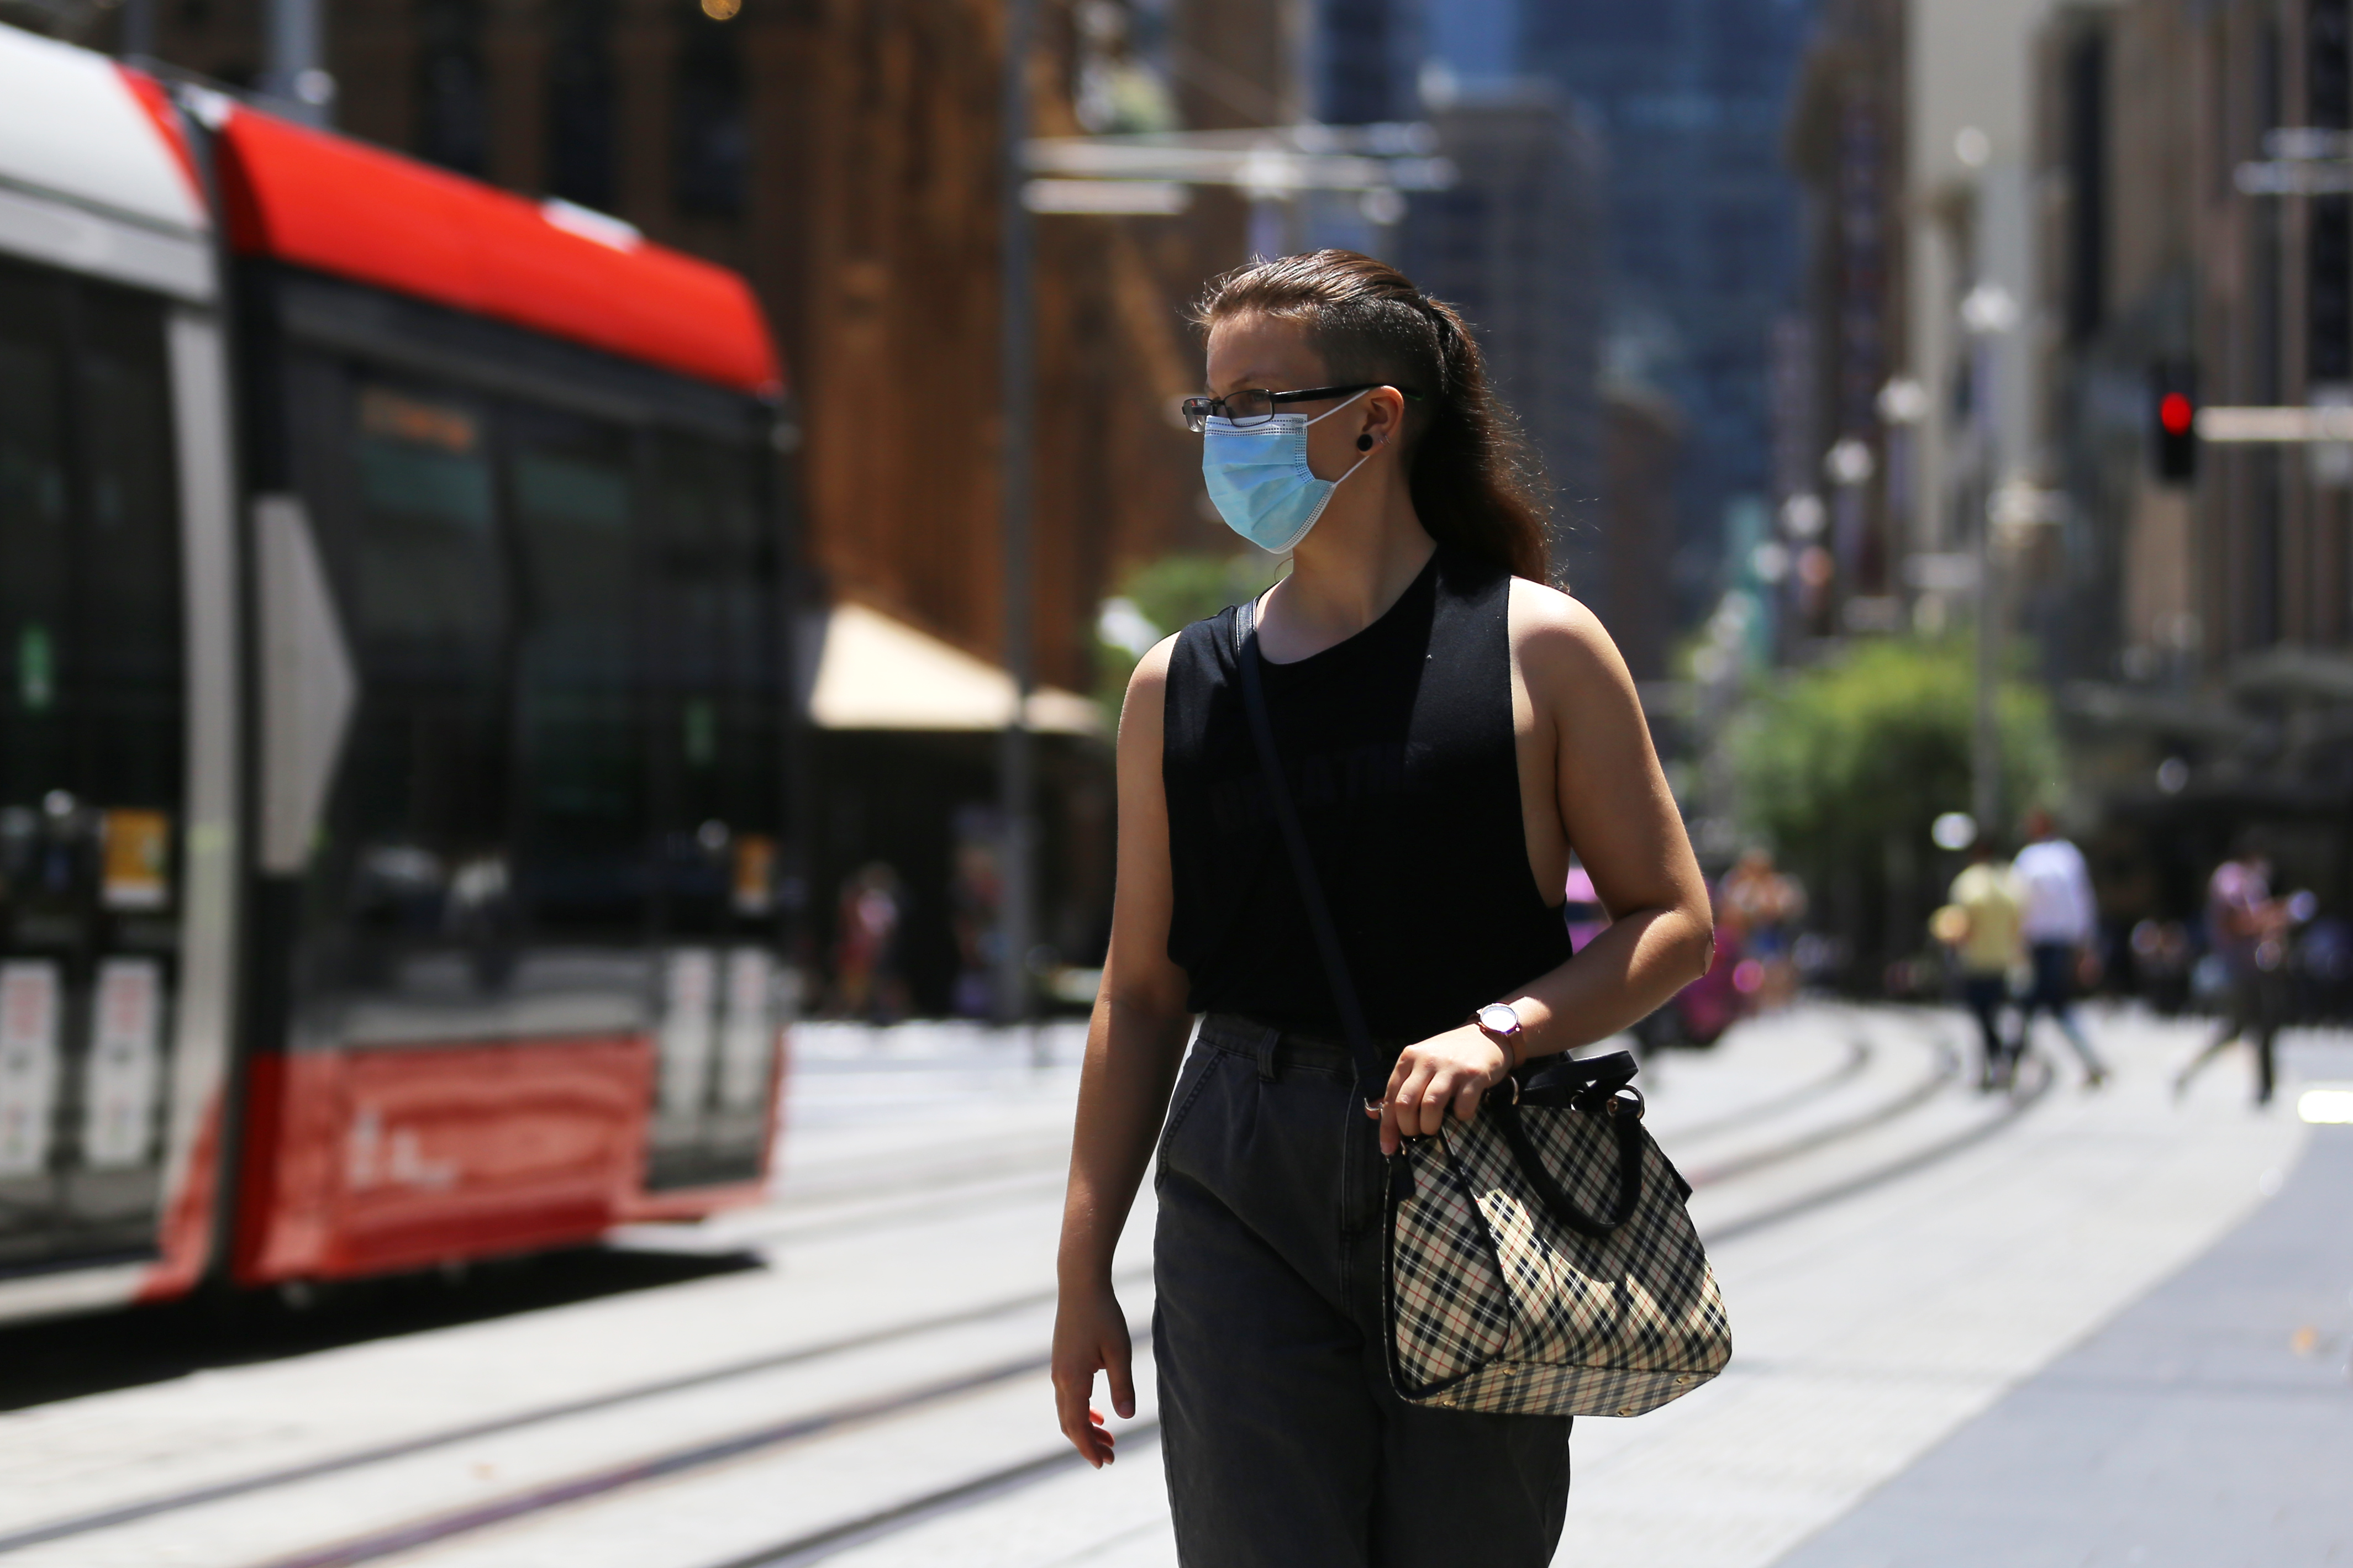 Sydney residents urged to test after virus found in sewage plants